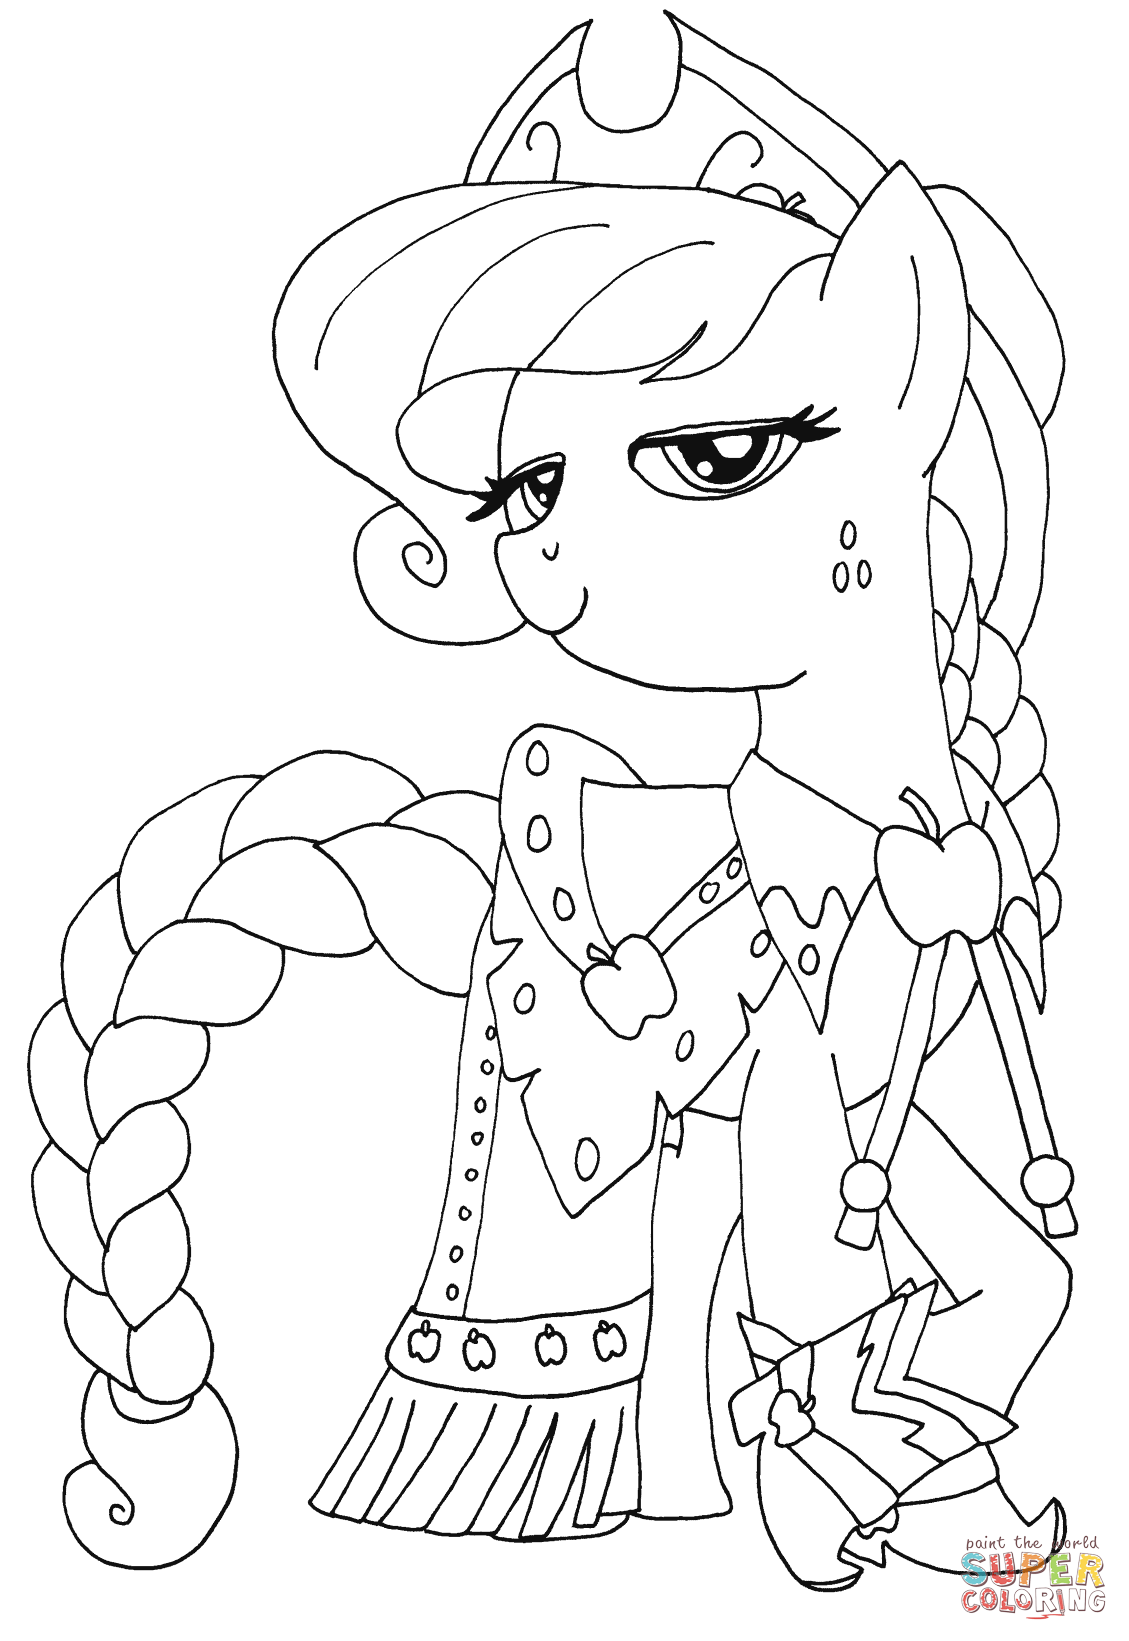 princess applejack from my little pony coloring page my little